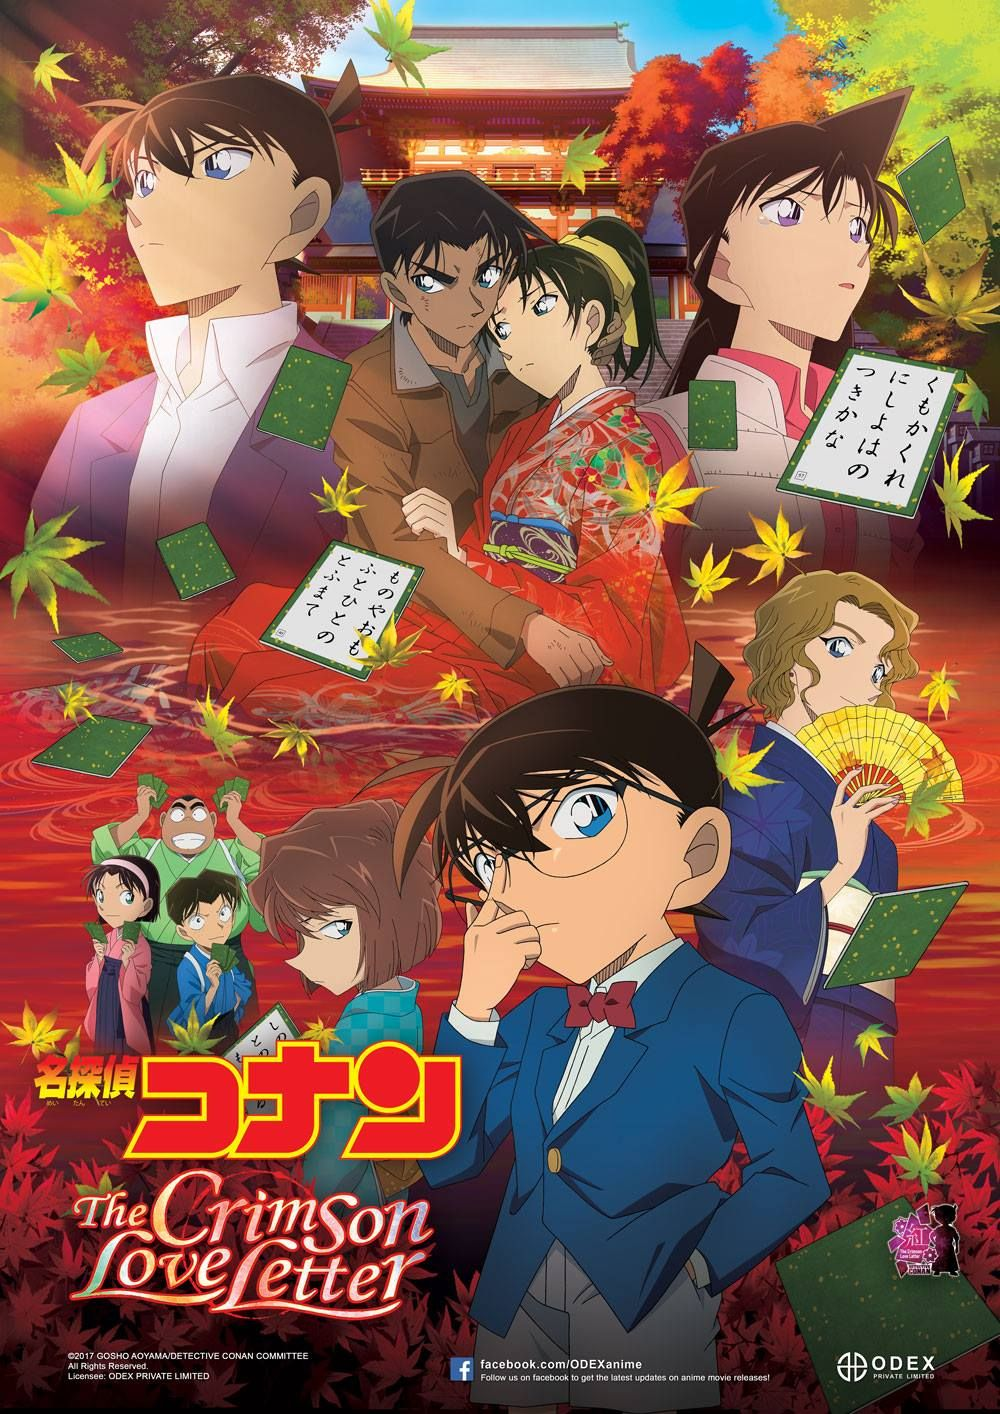 The Disappearance Of Conan Edogawa The Worst Two Days In History Sub Indo : disappearance, conan, edogawa, worst, history, Detective, Conan, Movies, Ideas, Movie,, Conan,